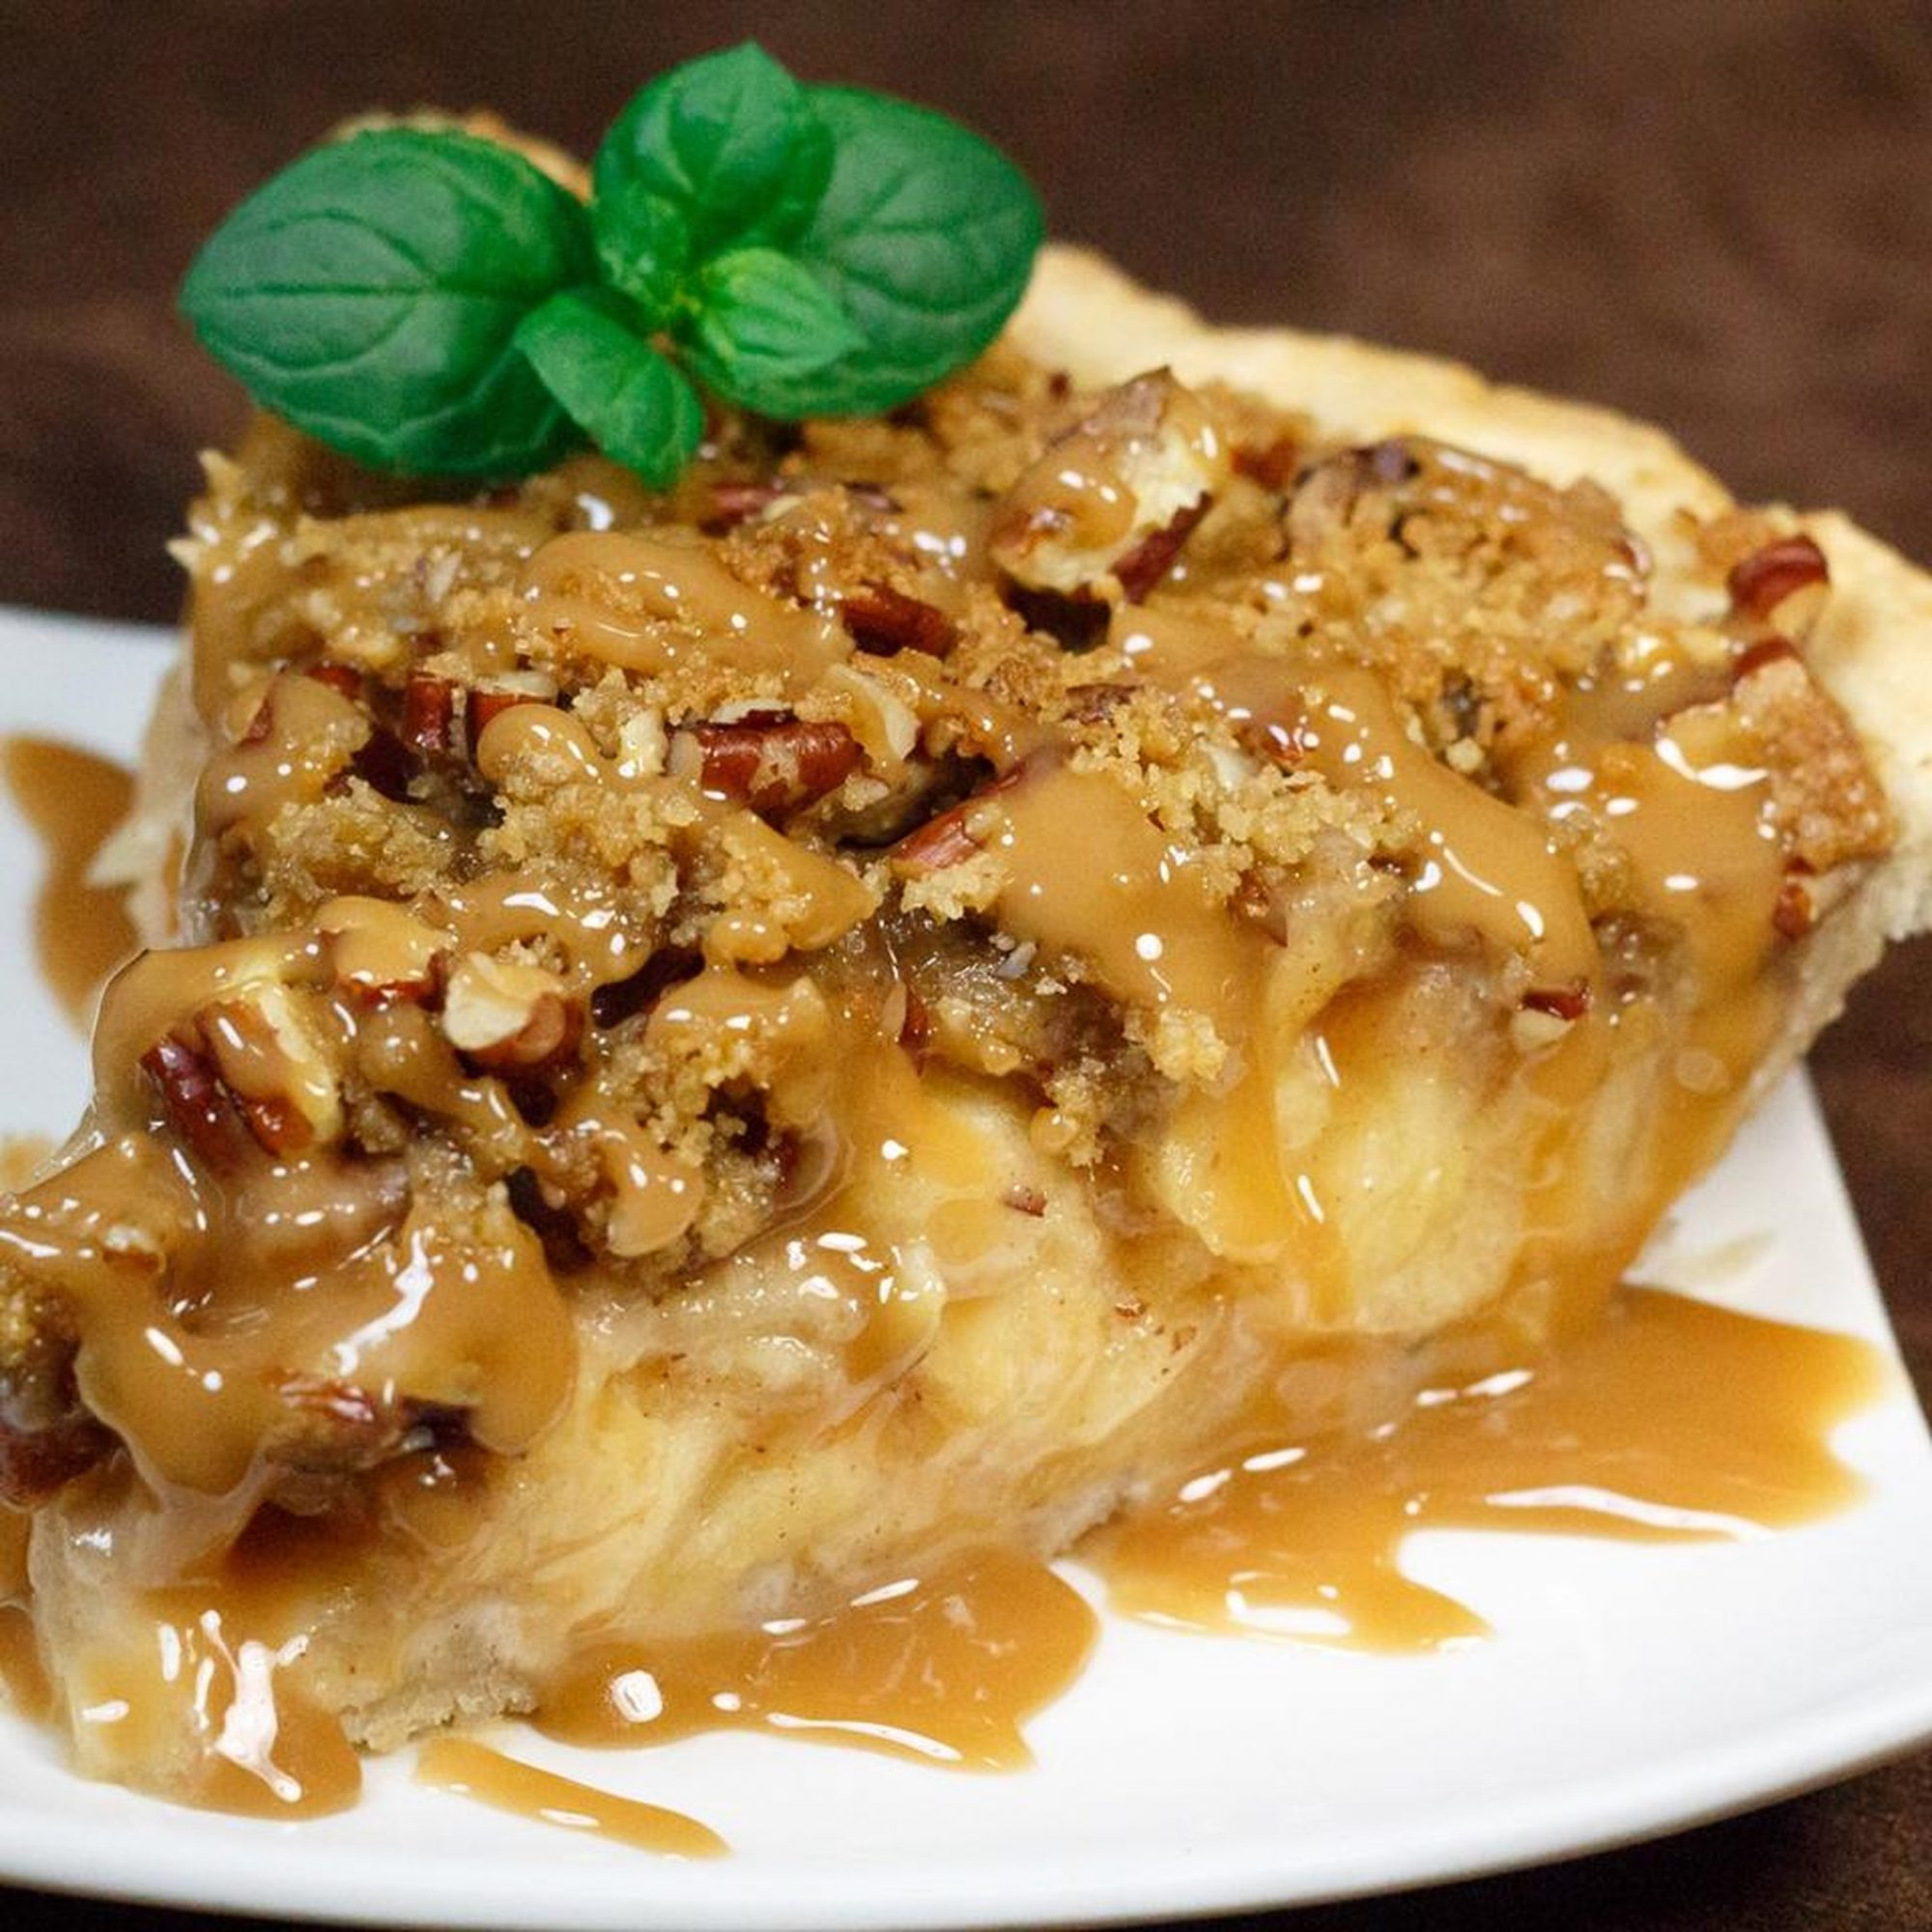 a slice of apple streusel pie with caramel sauce on top